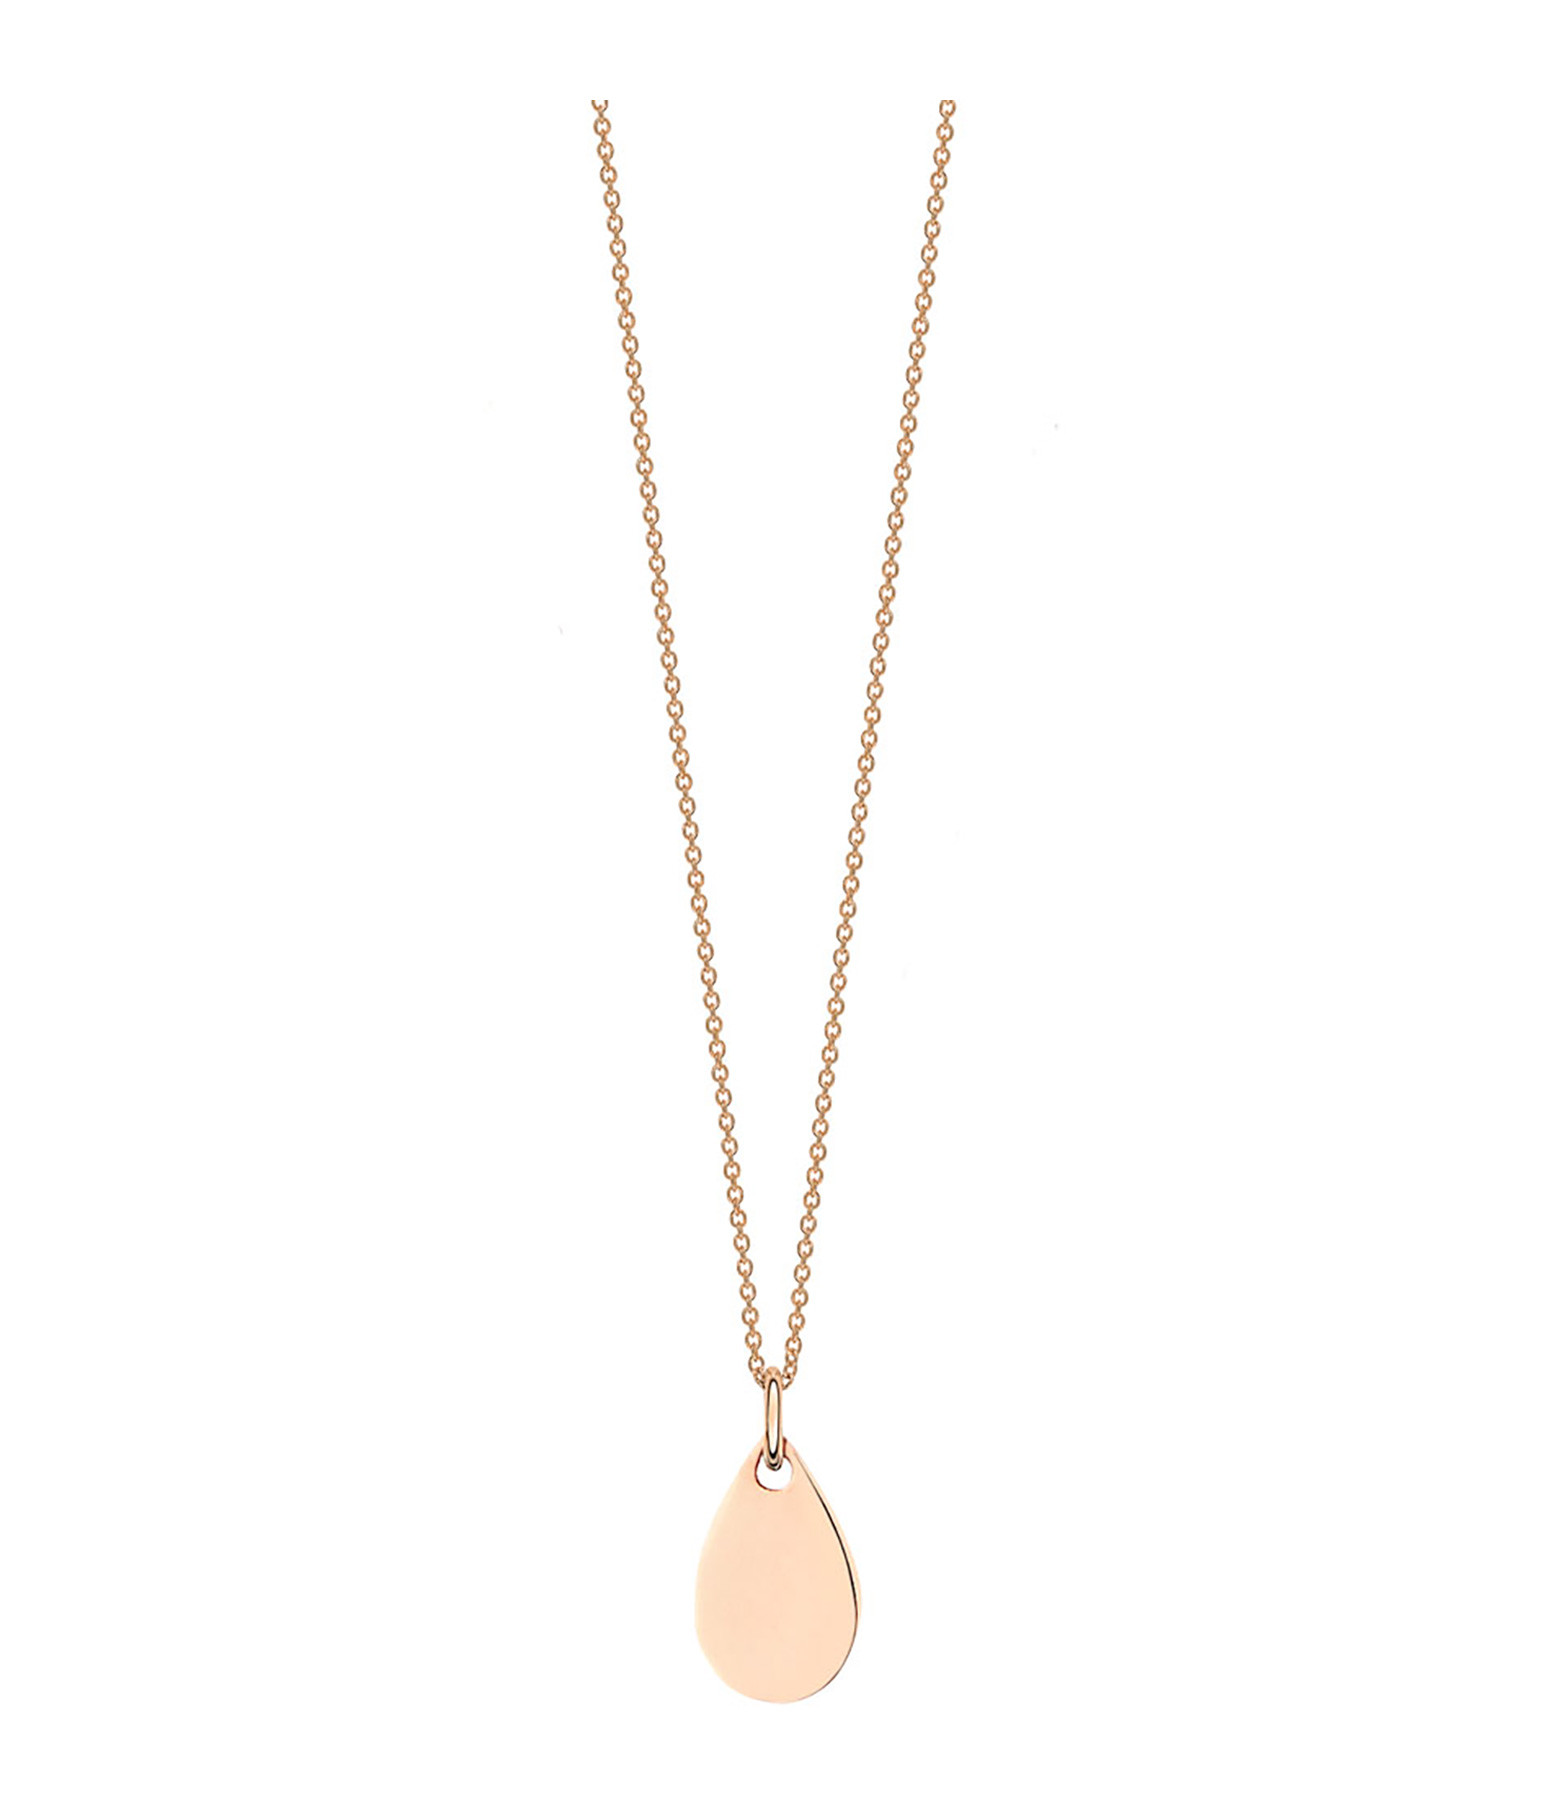 GINETTE NY - Collier Mini Bliss Or Rose